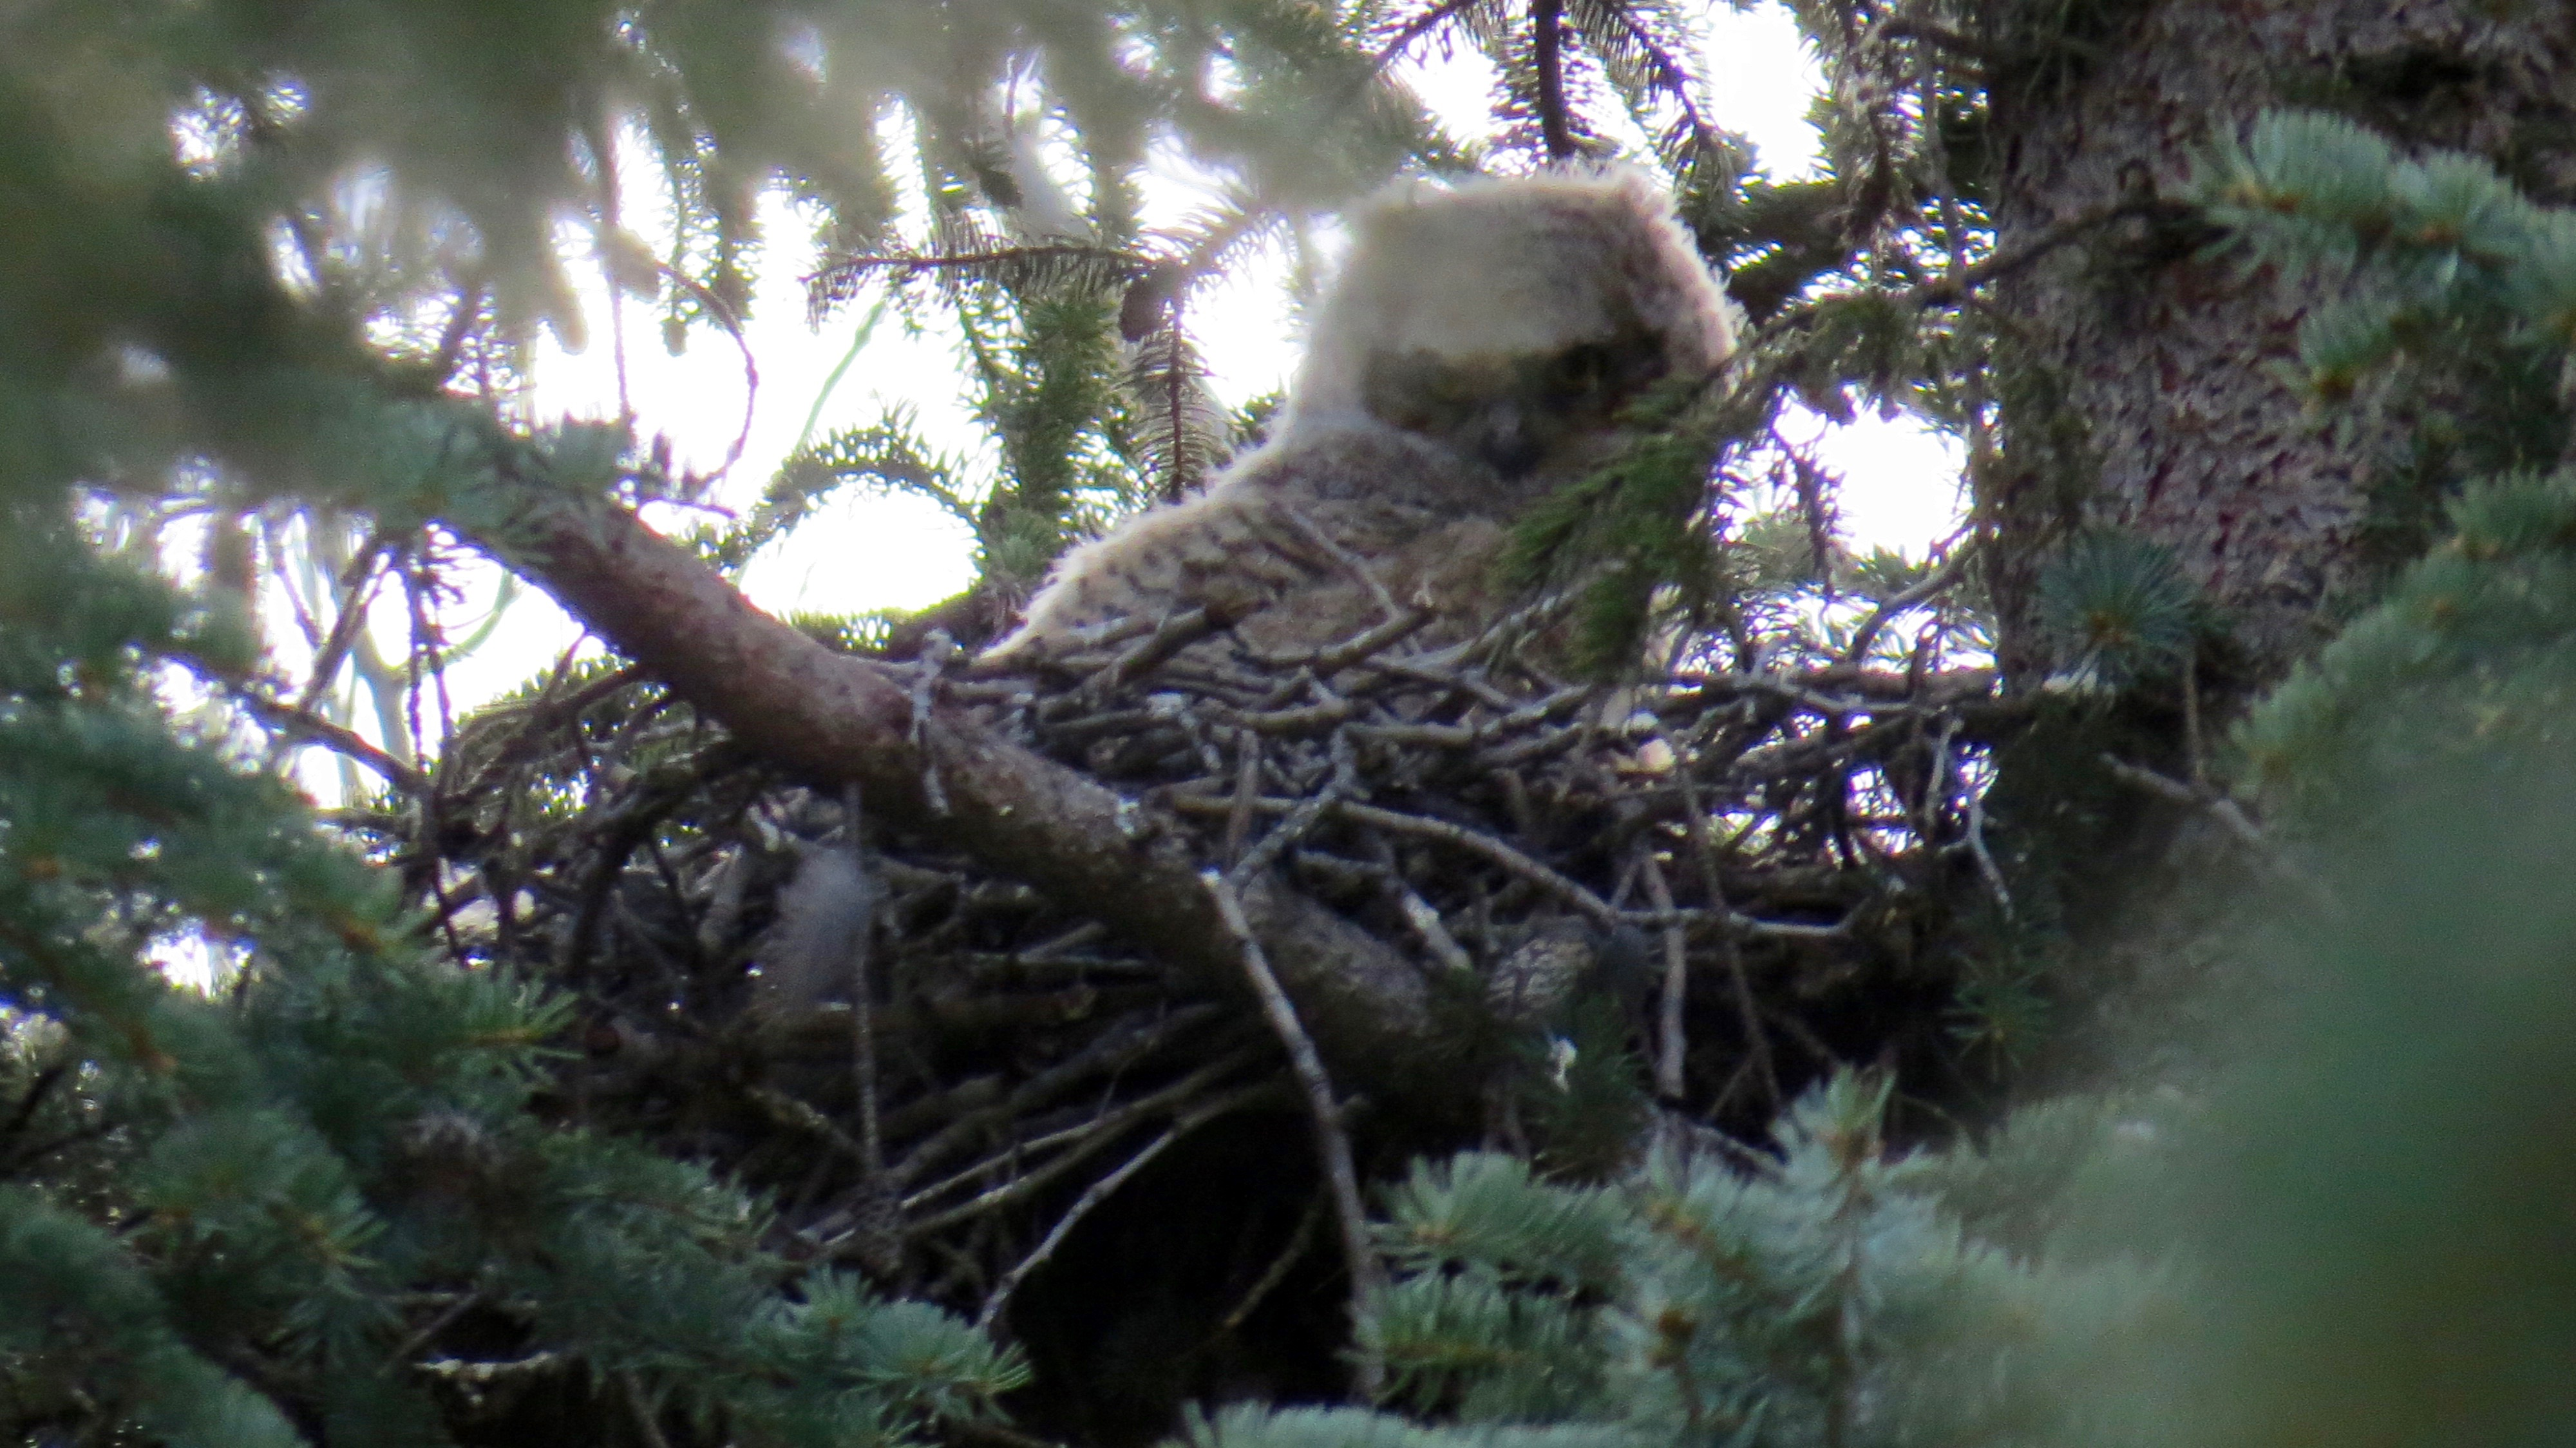 The Great Horned owlet. Note that everything but the face is covered with white fluff.